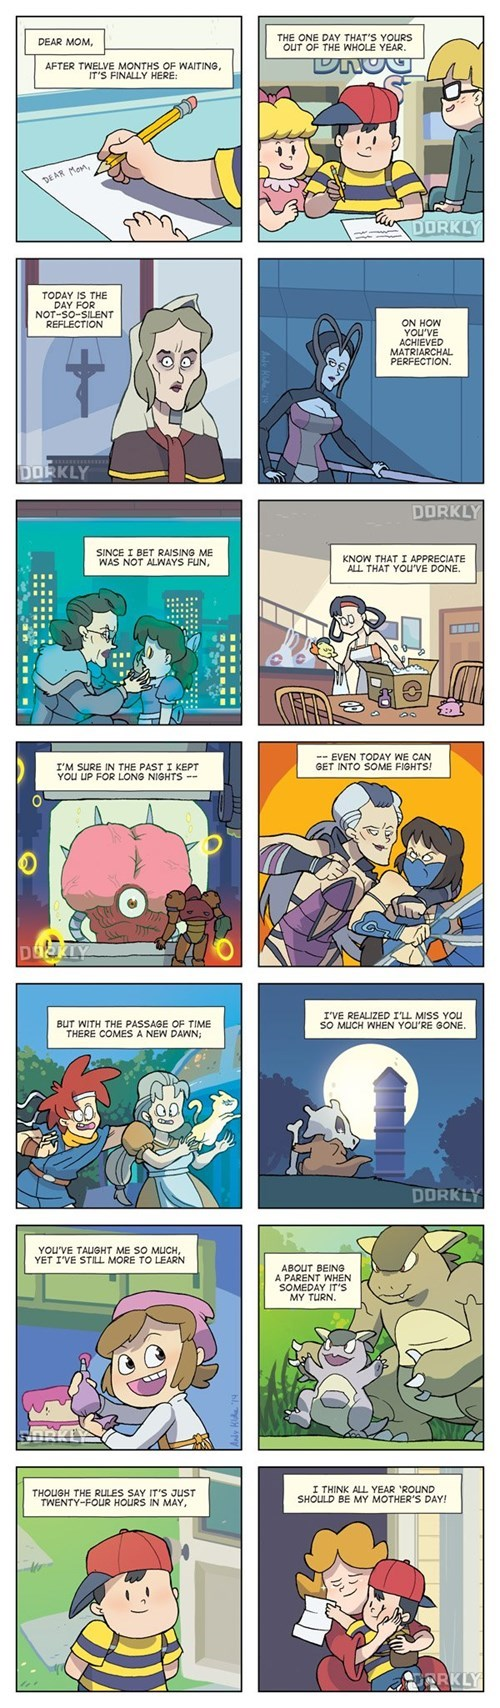 dorkly,feels,mothers day,video games,web comics